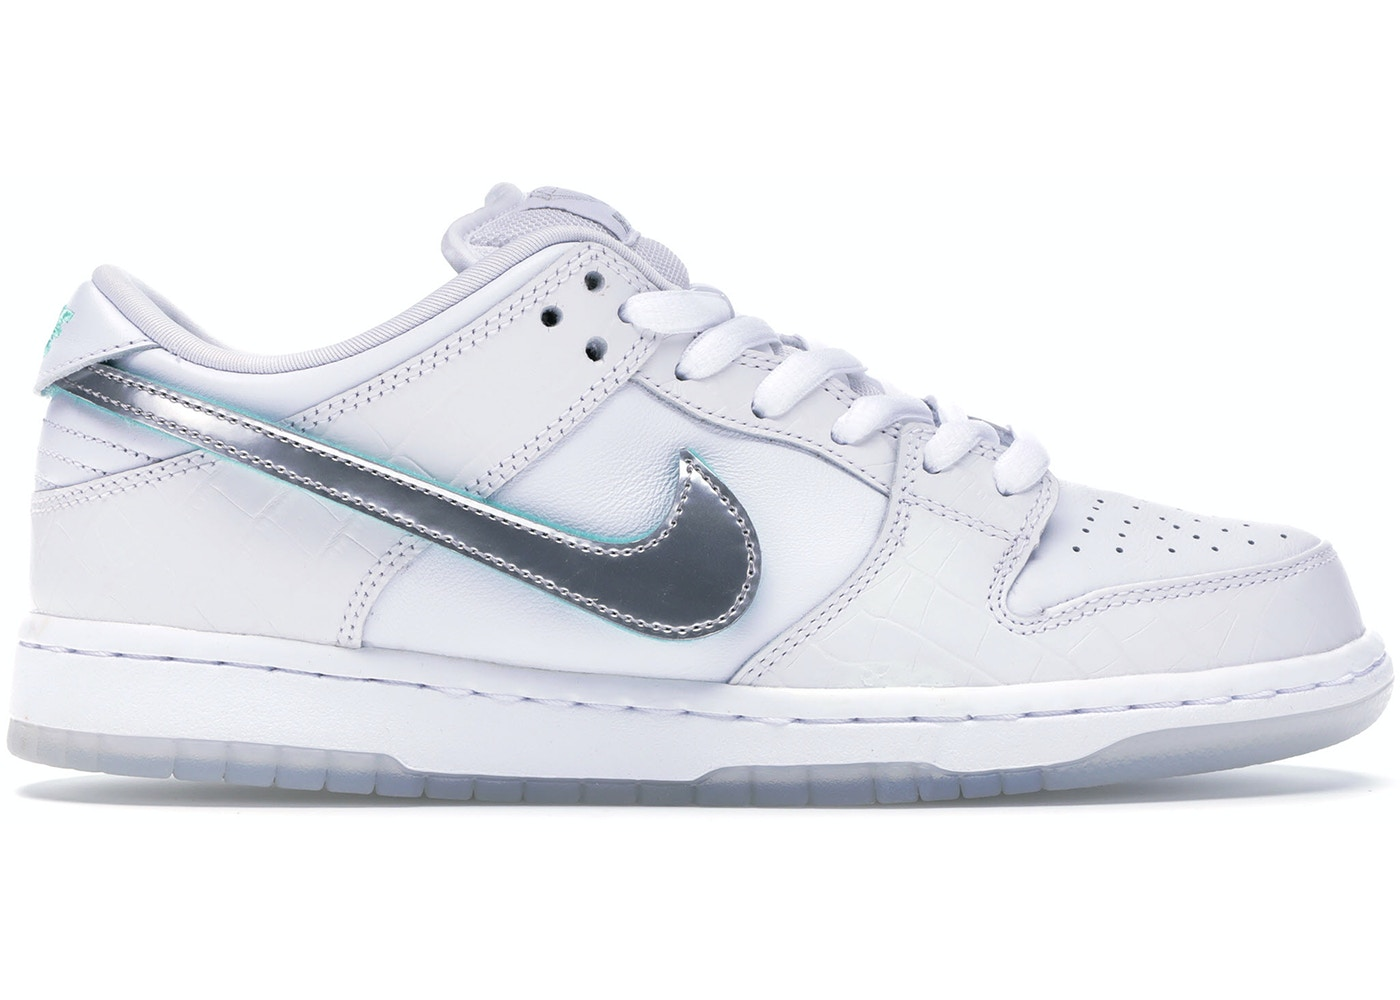 8ad39ab08ca0 Nike SB Dunk Low Diamond Supply Co White Diamond - BV1310-100